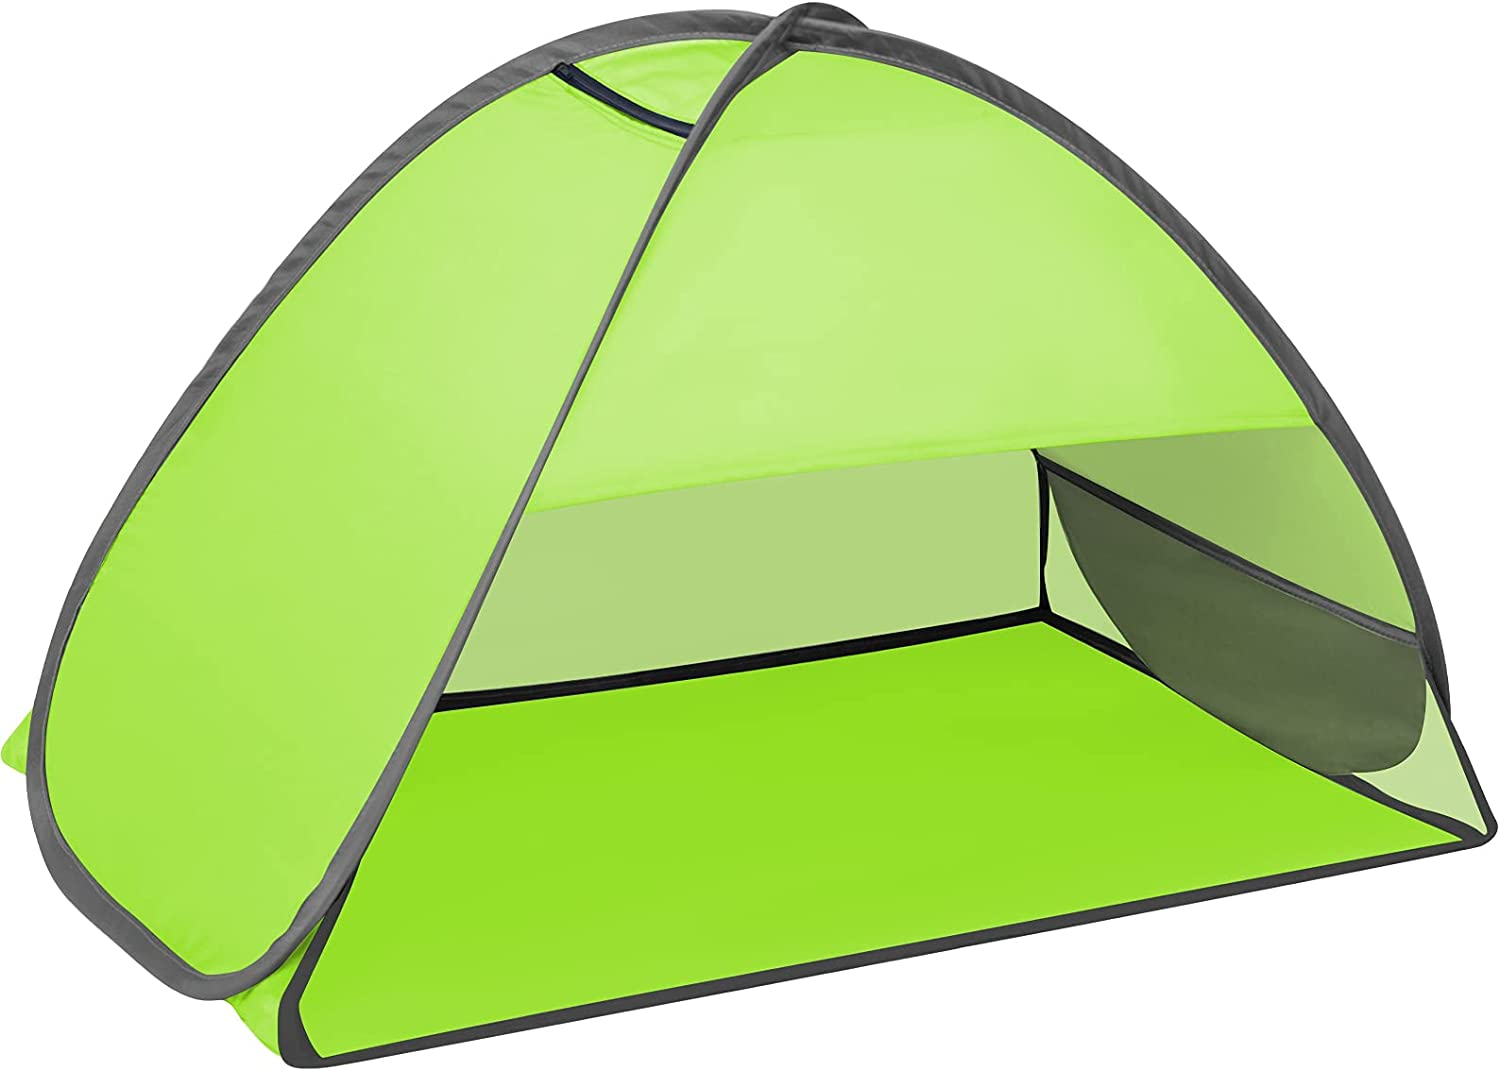 Max 62% OFF Fltom Pop Up Department store Beach Tent Mini for Size 50 UPF Shelter